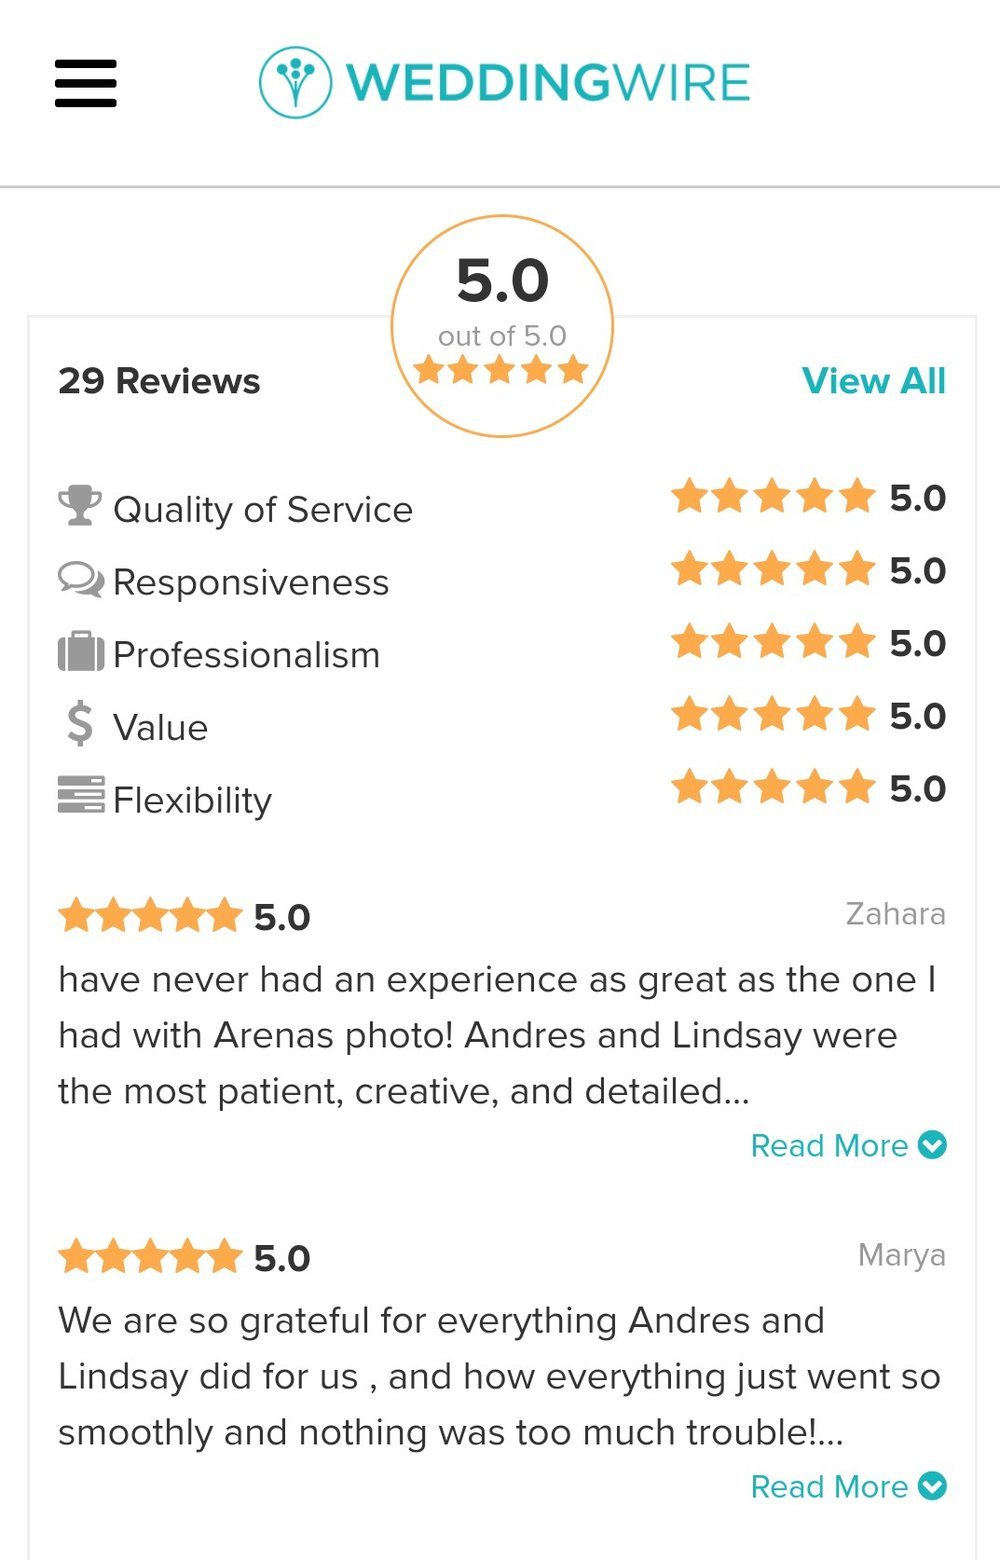 Reviews our clients have left on WeddingWire